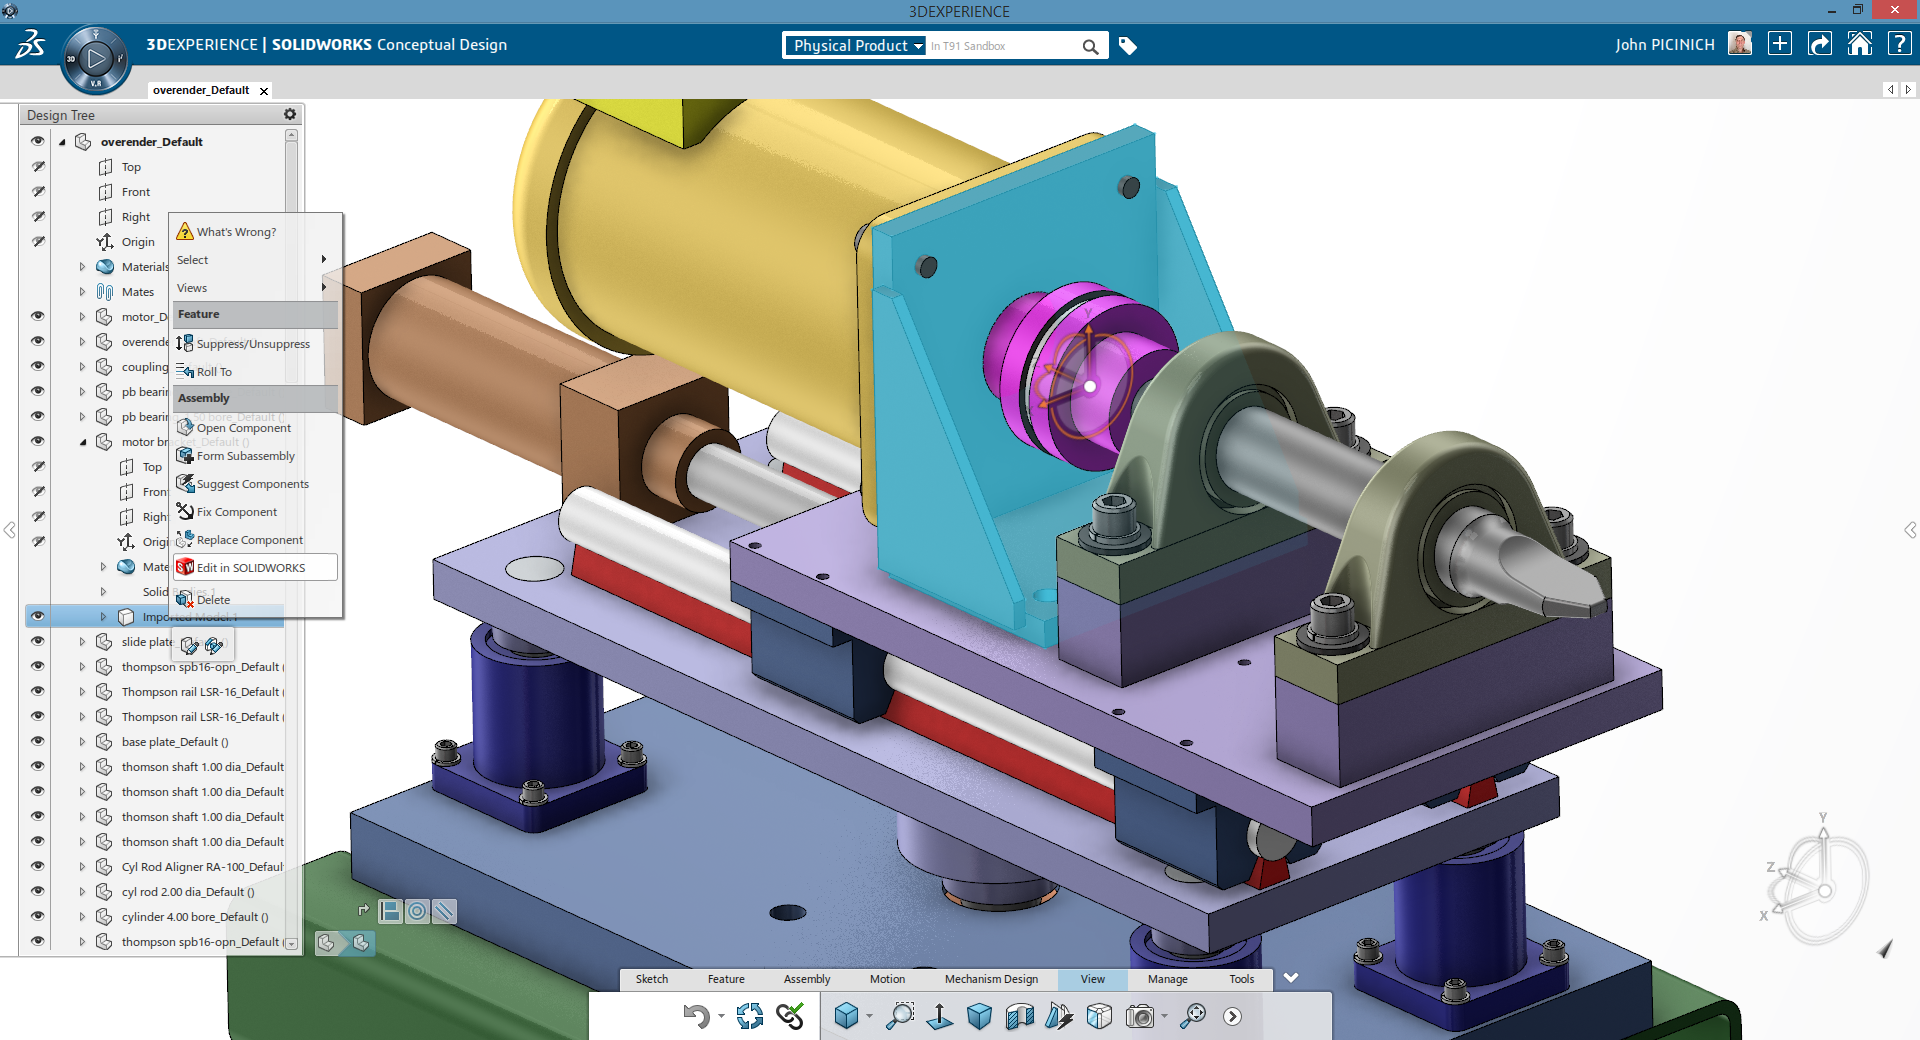 SOLIDWORKS 3DEXPERIENCE Solutions: The Safe Choice for Data Interoperability